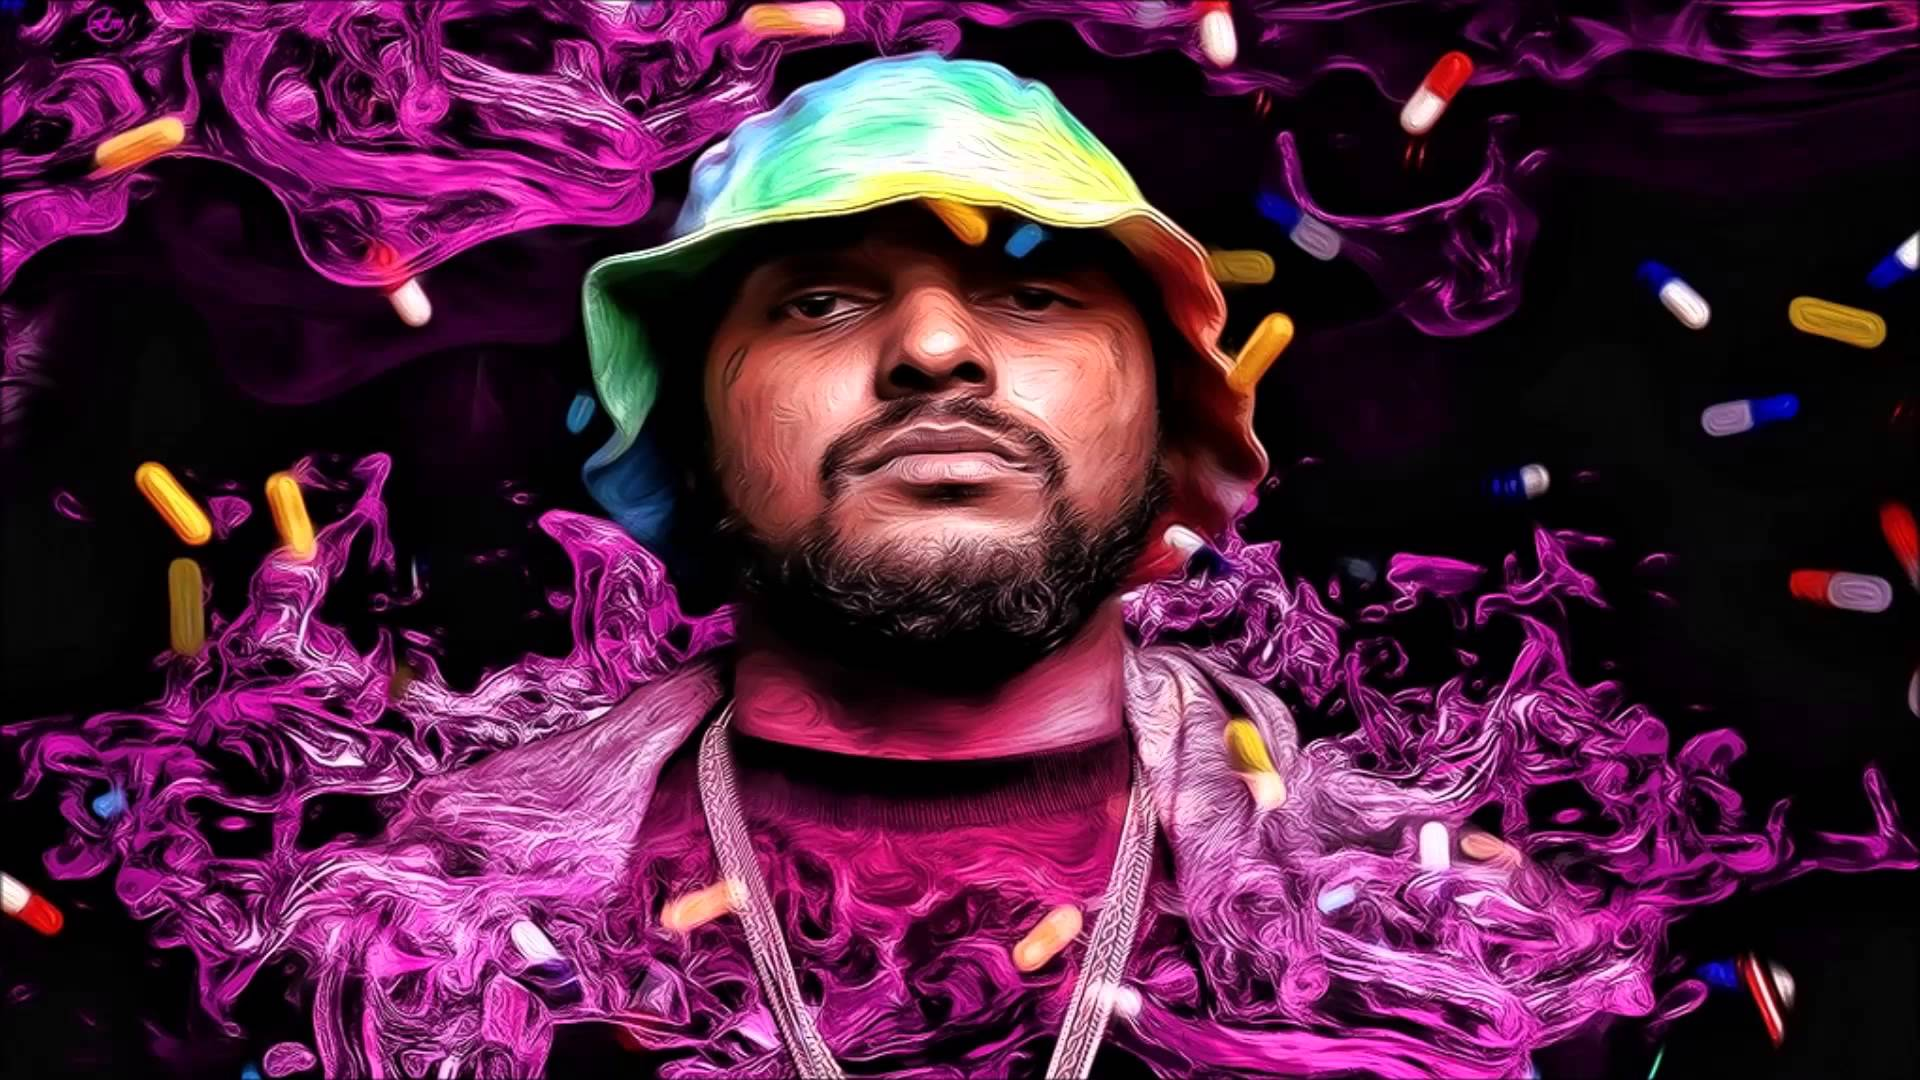 ScHoolboy Q Wallpapers High Quality | Download Free